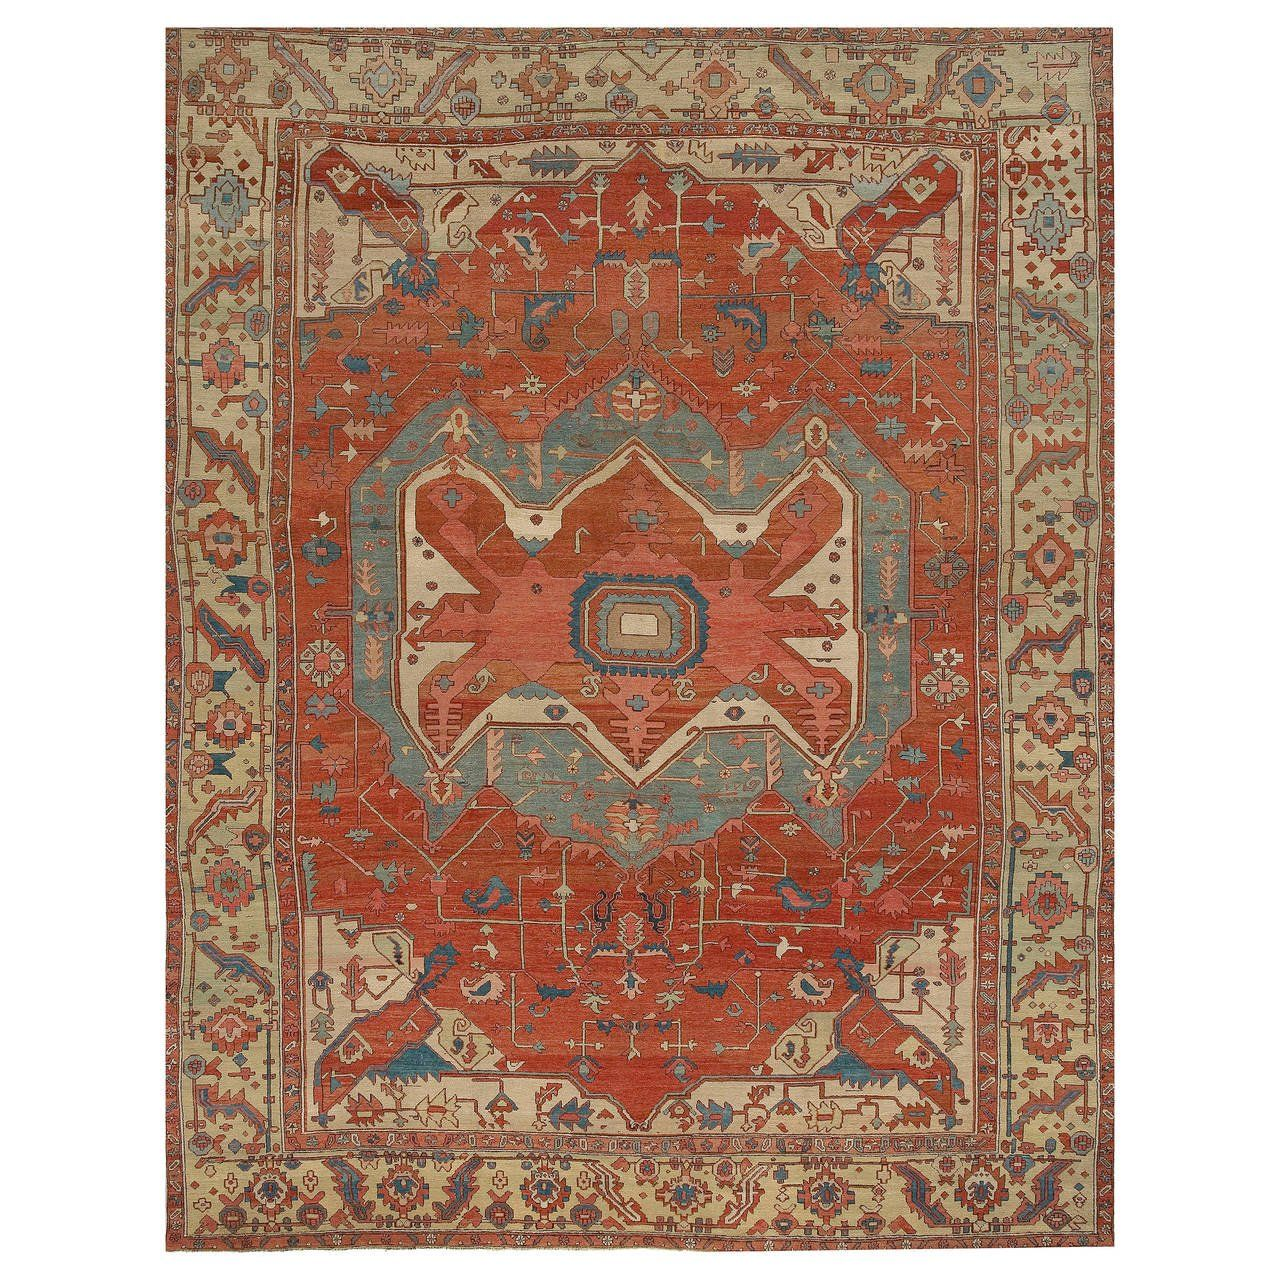 Antique Heriz Serapi Rug Circa 1890